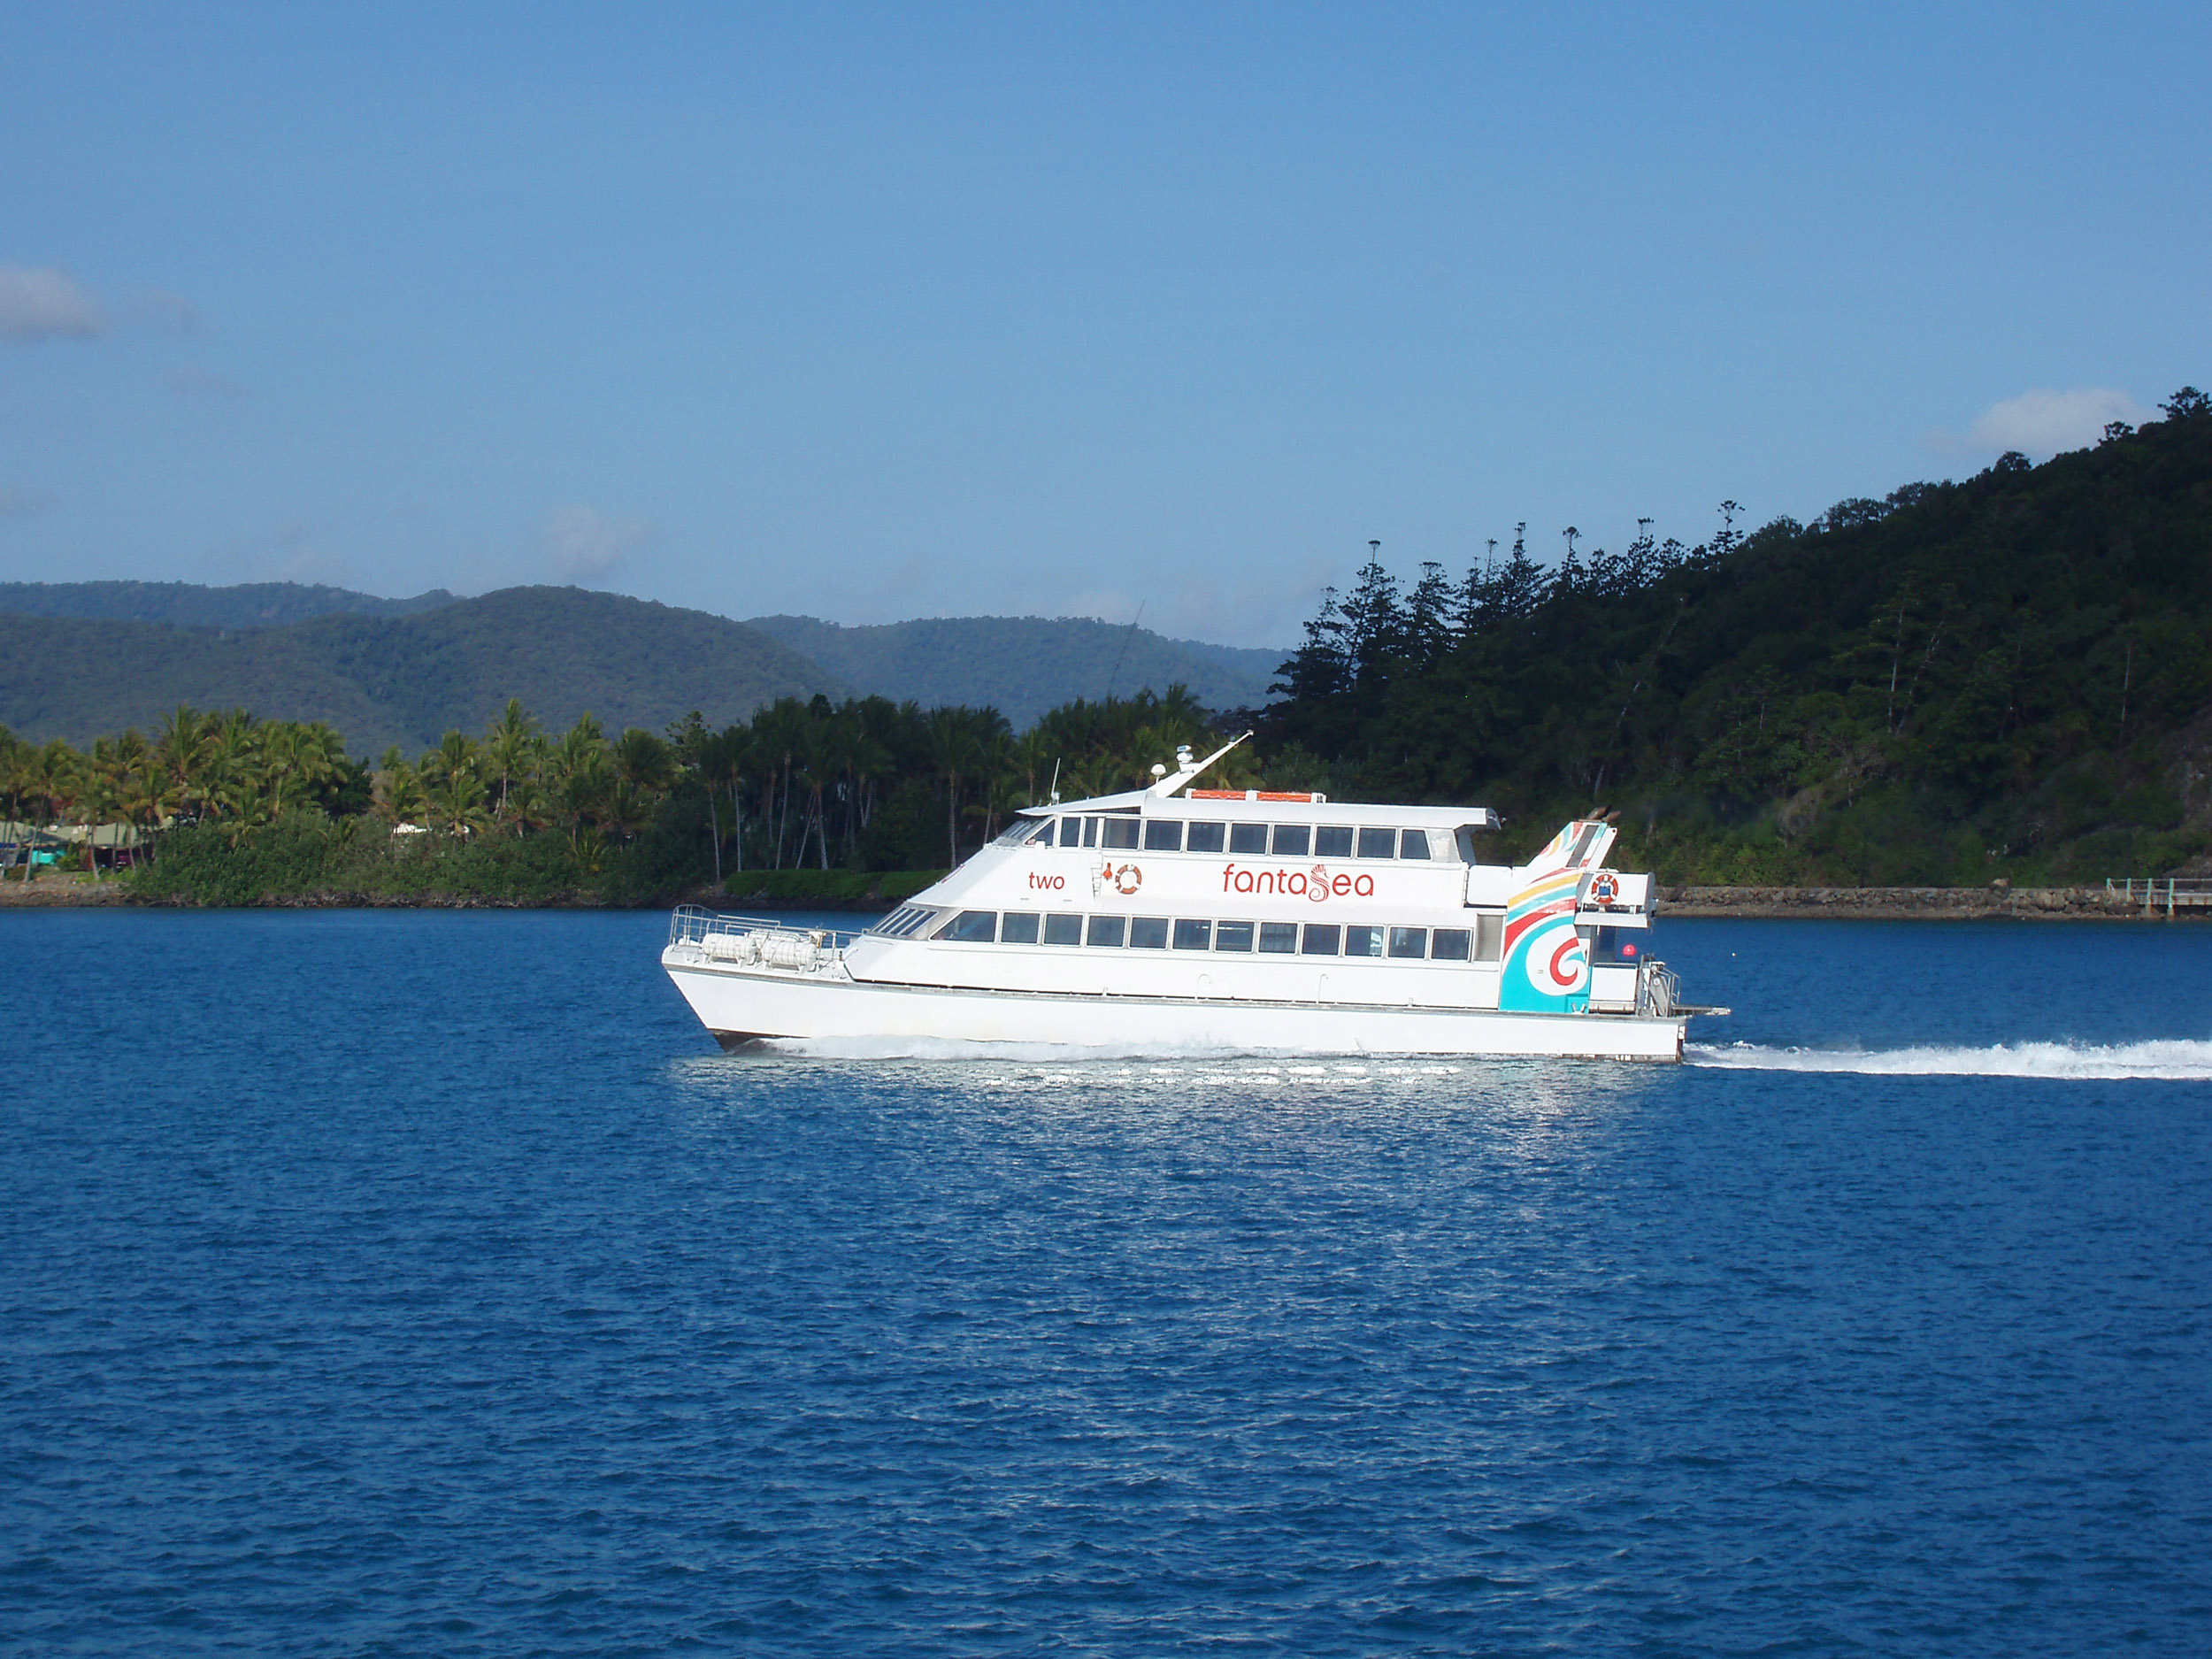 a small ferry off the coast off daydream island, whitsundays, queensland